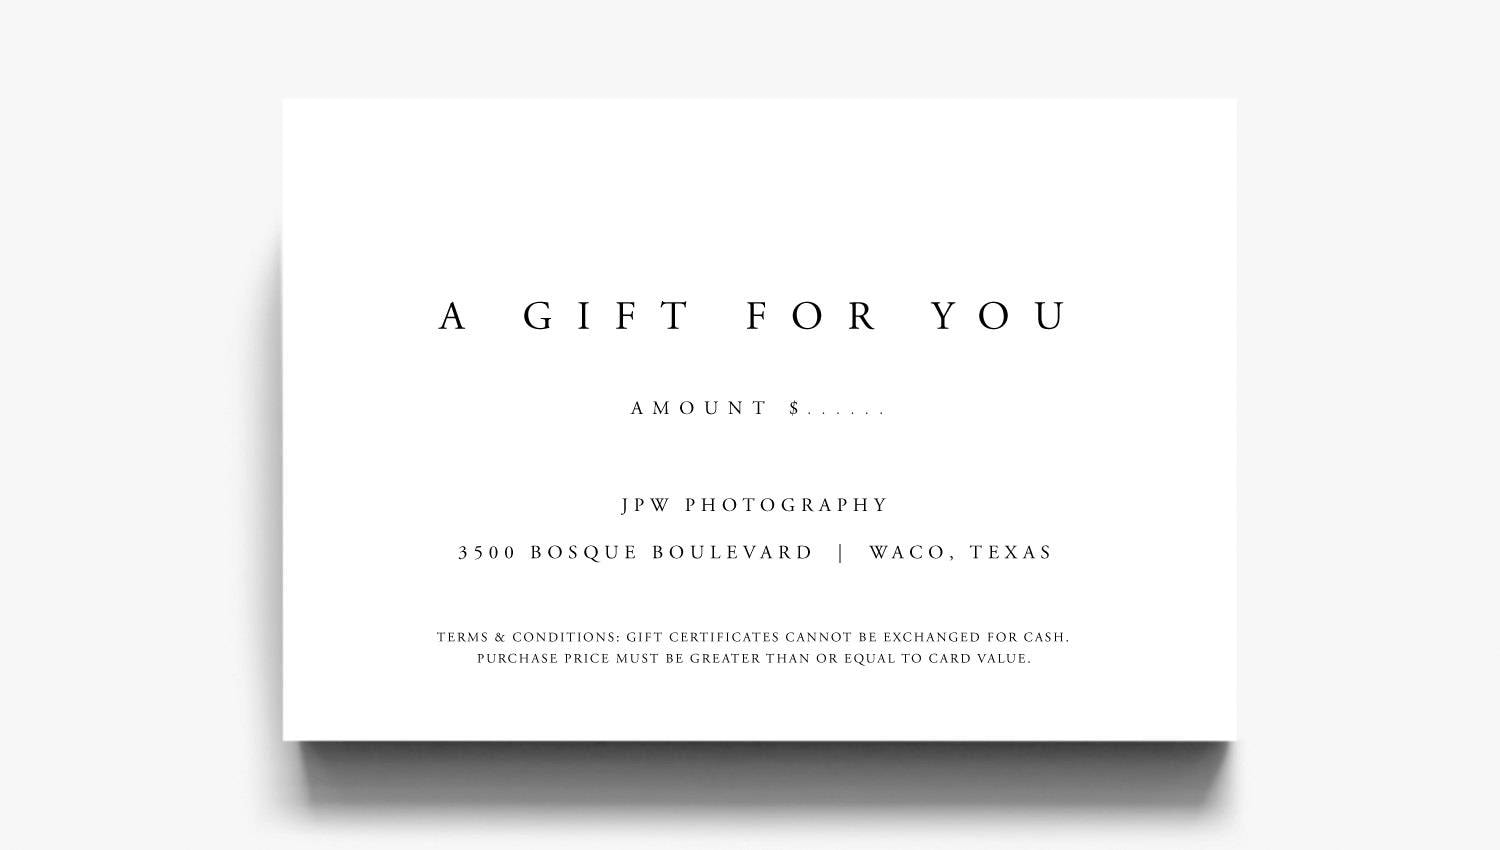 Gift certificate template a gift for you gift voucher for Gift certificate terms and conditions template